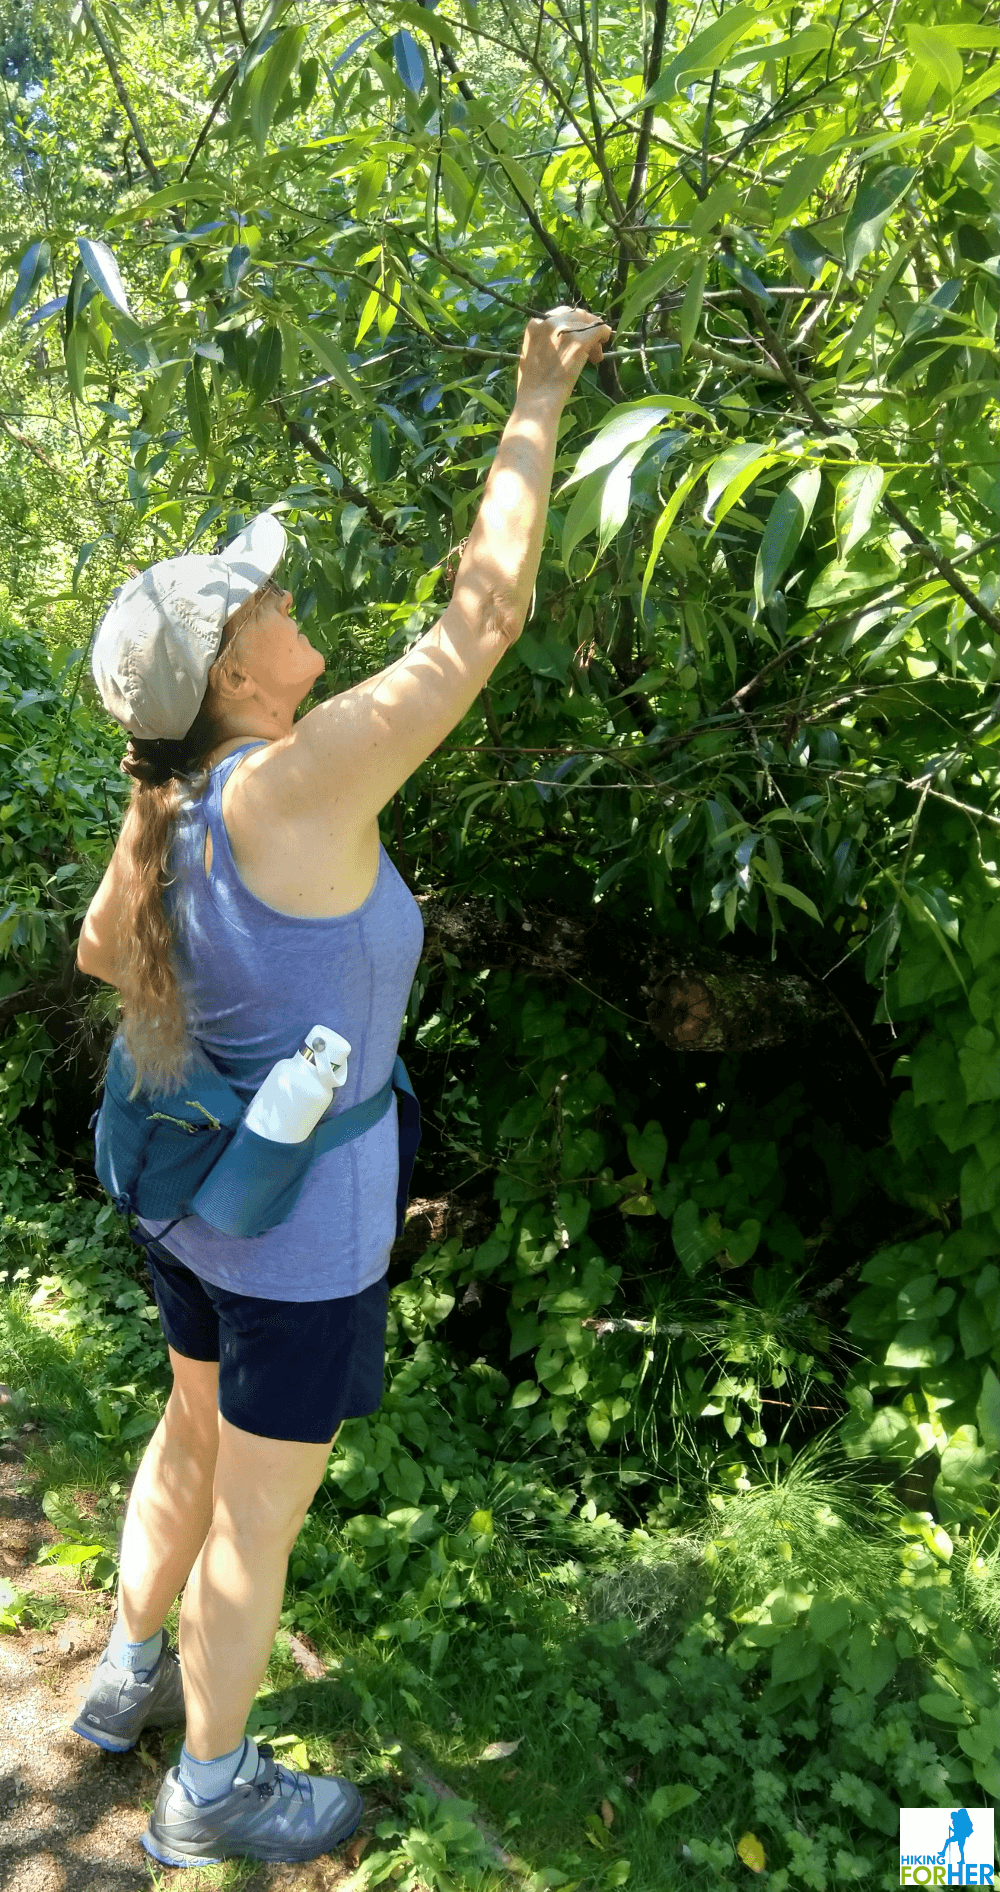 Female hiker reaching up into a leafy branch, wearing shorts and tank top plus a fanny pack with water bottle